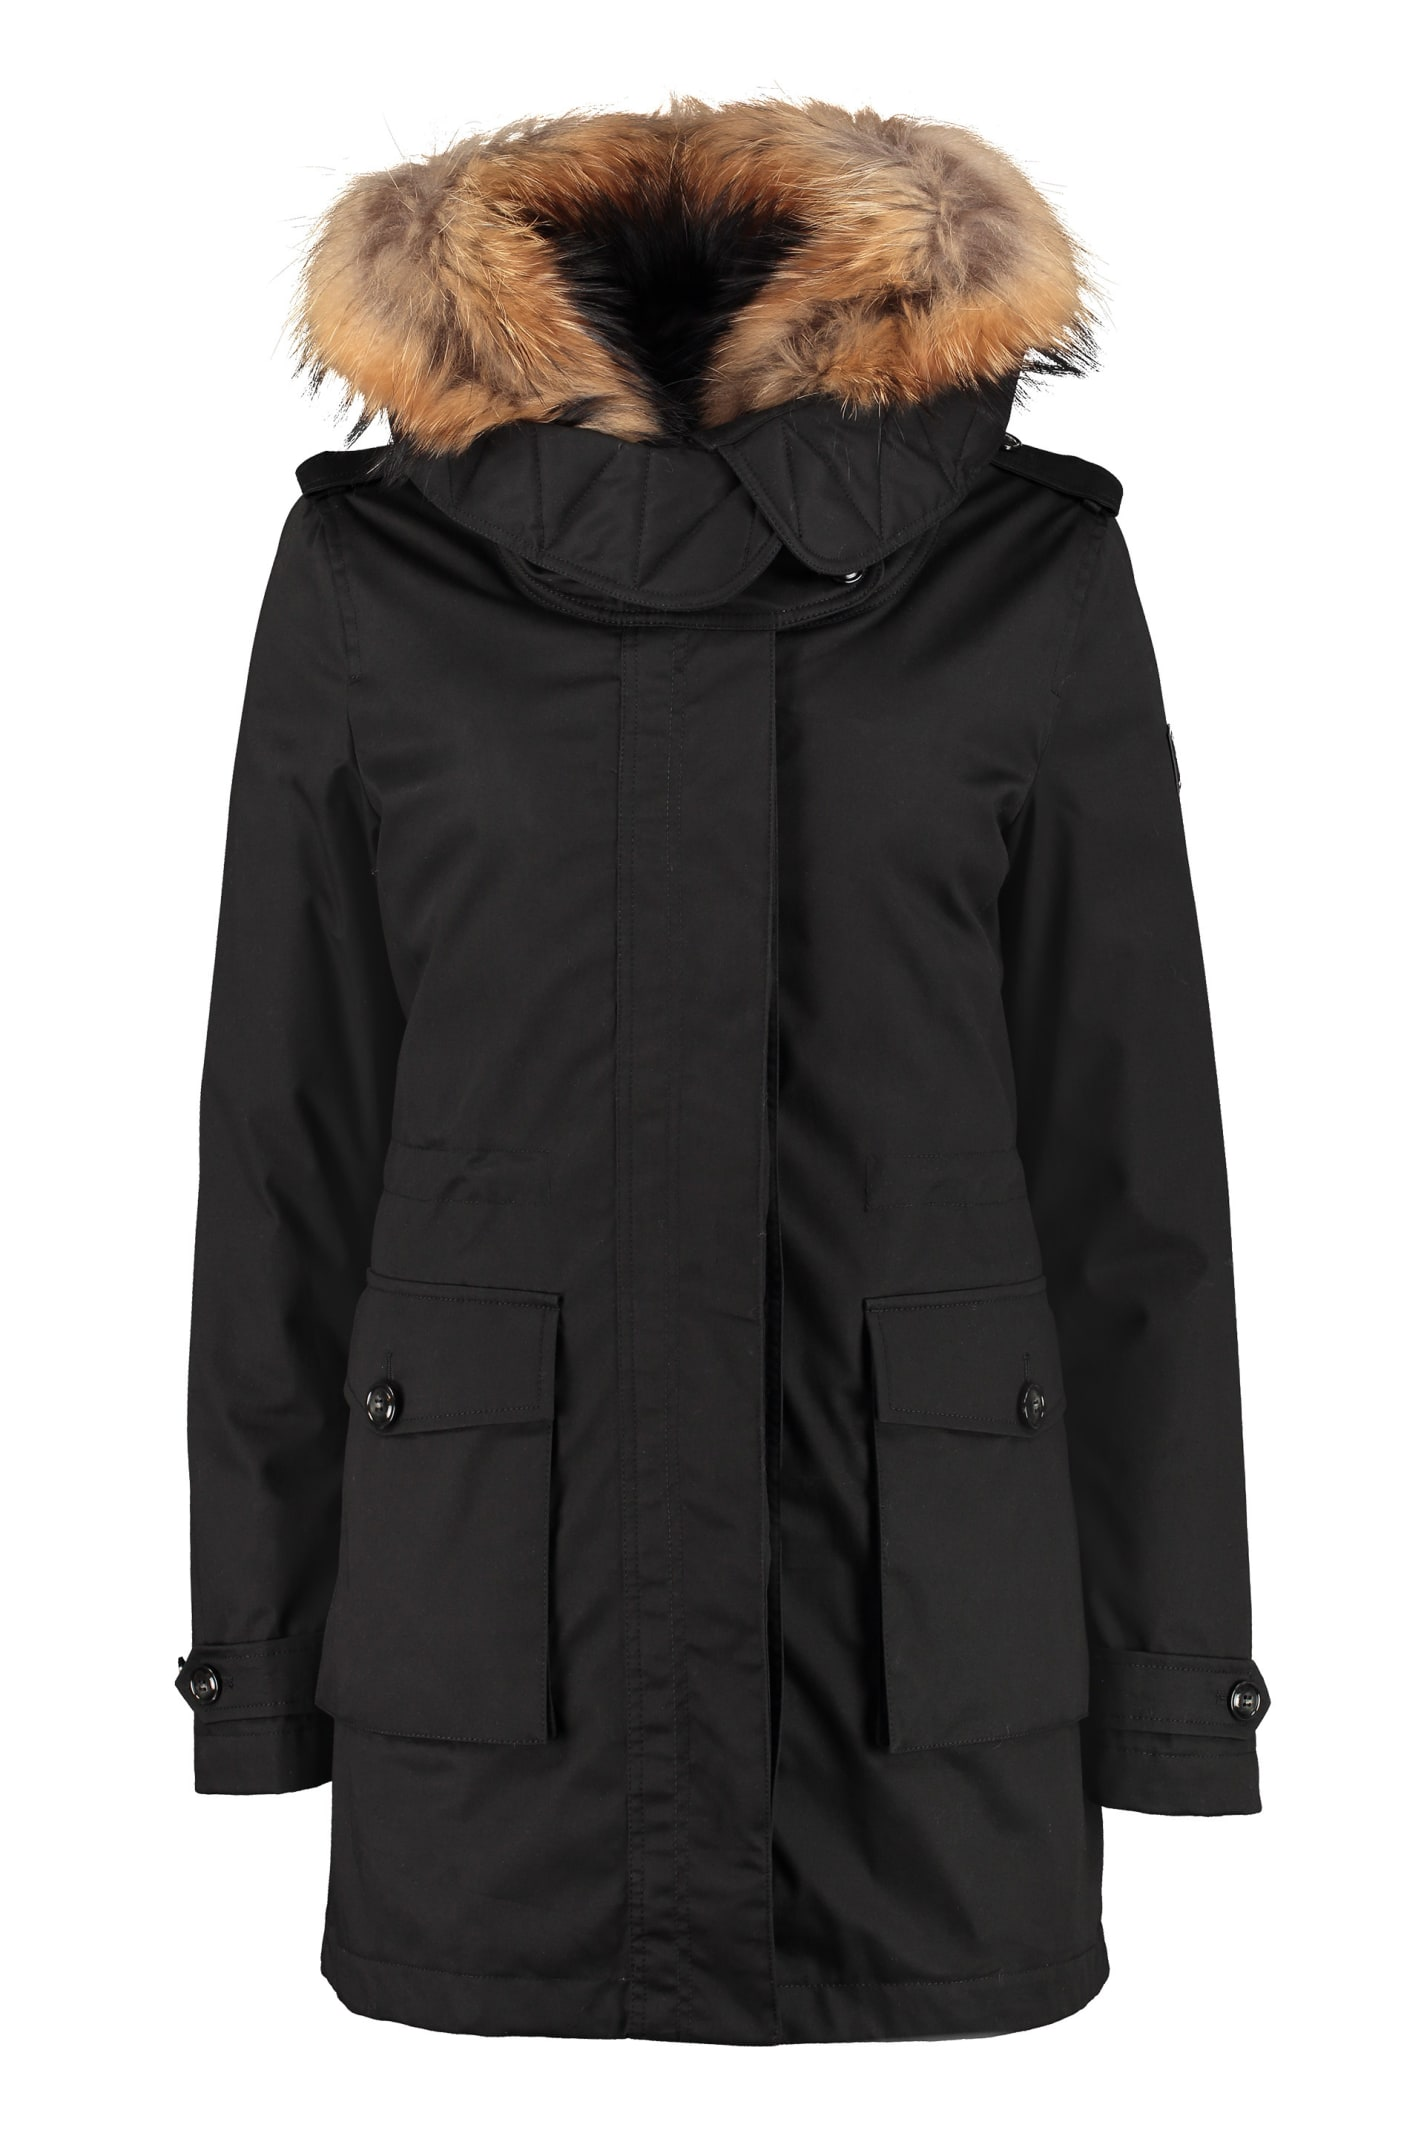 Woolrich Scarlett Padded Parka With Fur Hood